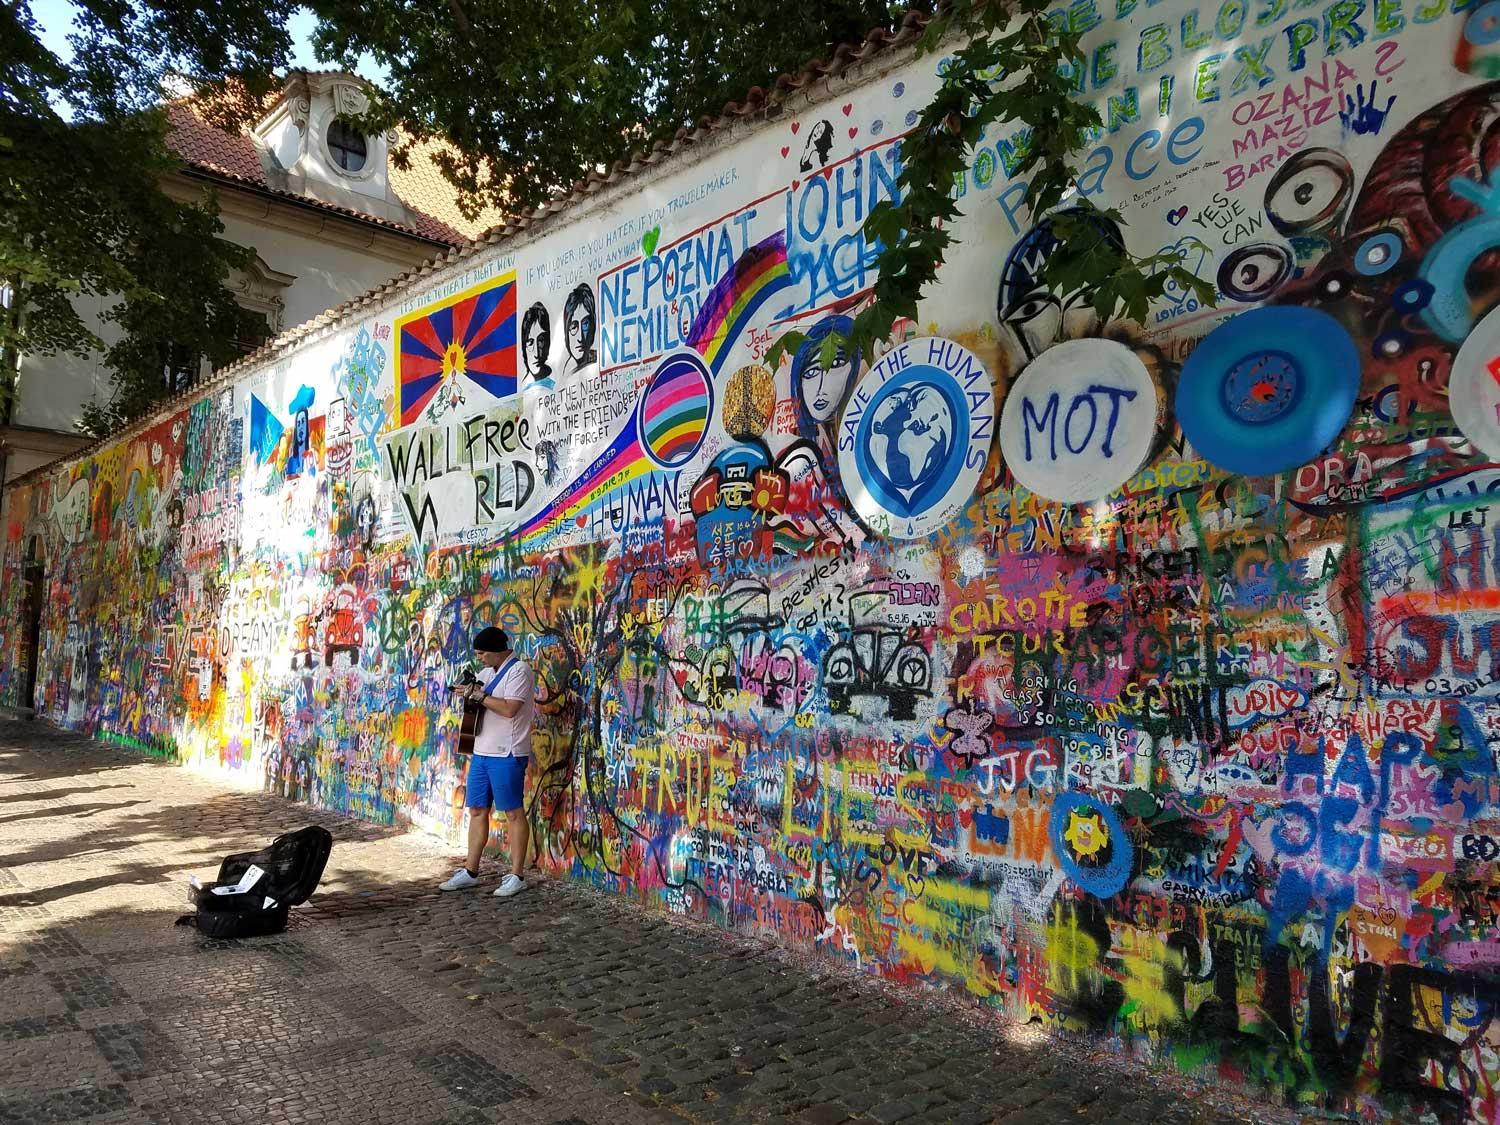 After John Lennon was shot, this artwork spontaneously appeared on a wall in Prague. The communists tried repeatedly to paint over it, but the Lennon Wall kept reappearing. Nowadays, something new is added to it every day. The man in the stocking cap is playing Lennon songs for tips.